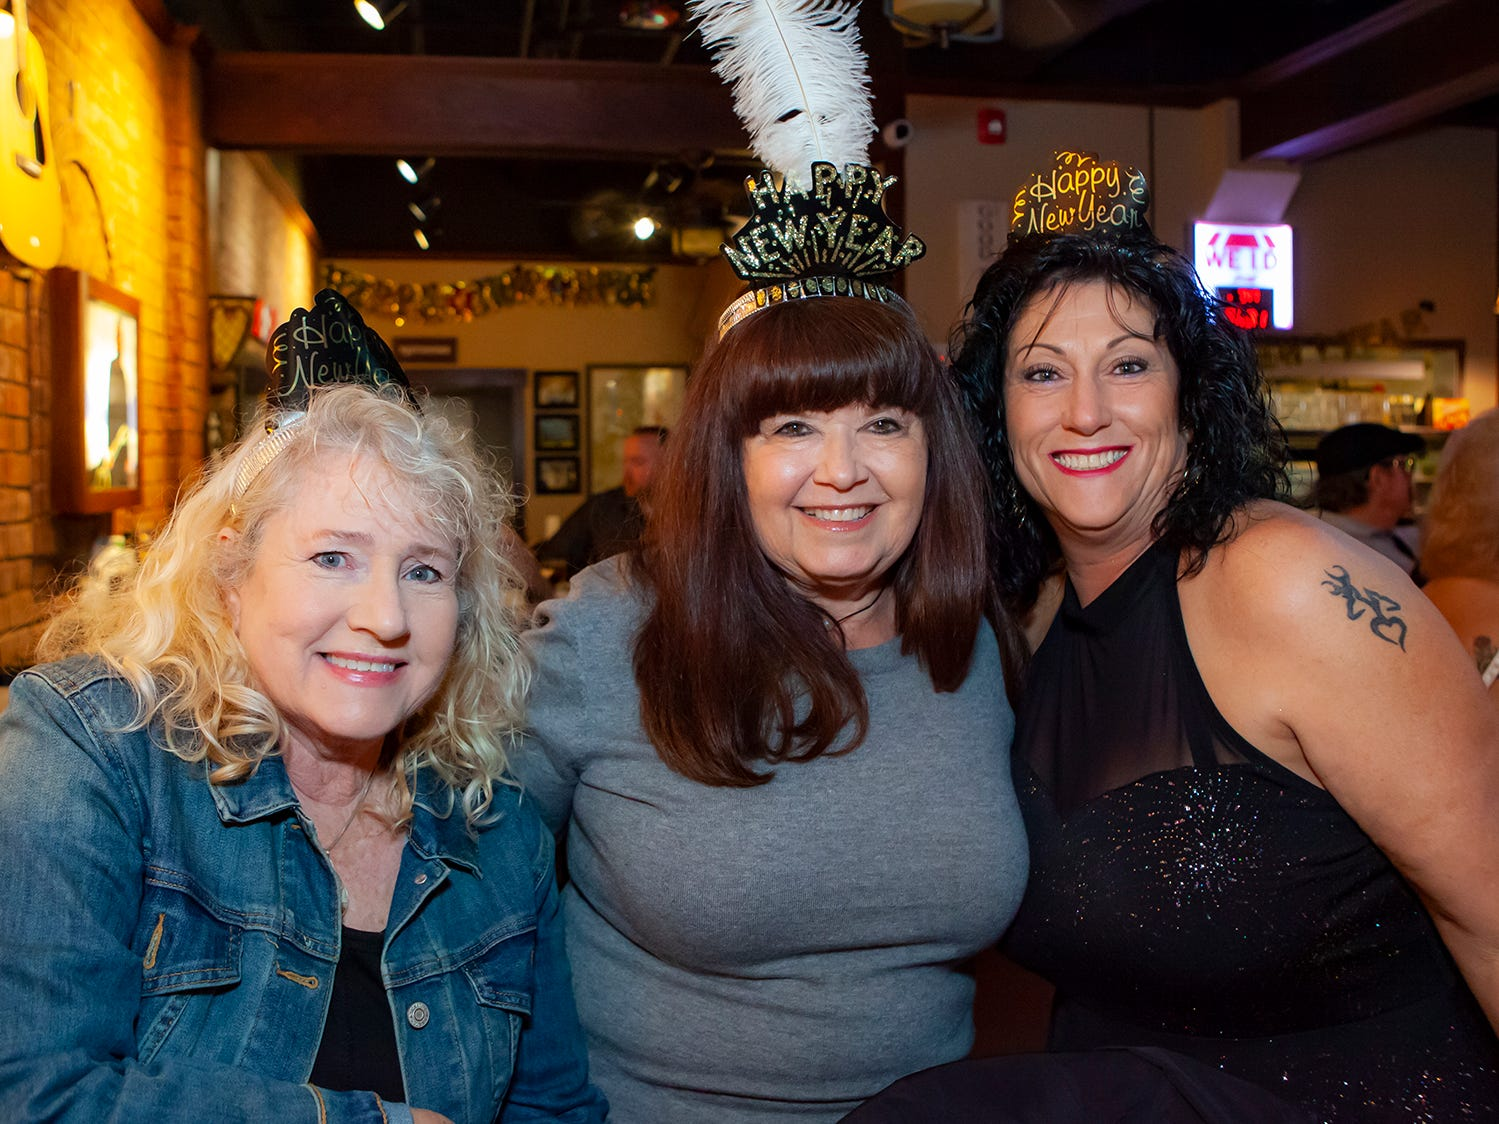 Katie Christian, Barbara Law and Vickie Lucas at the New Year's party at Hank's Honky Tonk in Murfreesboro.